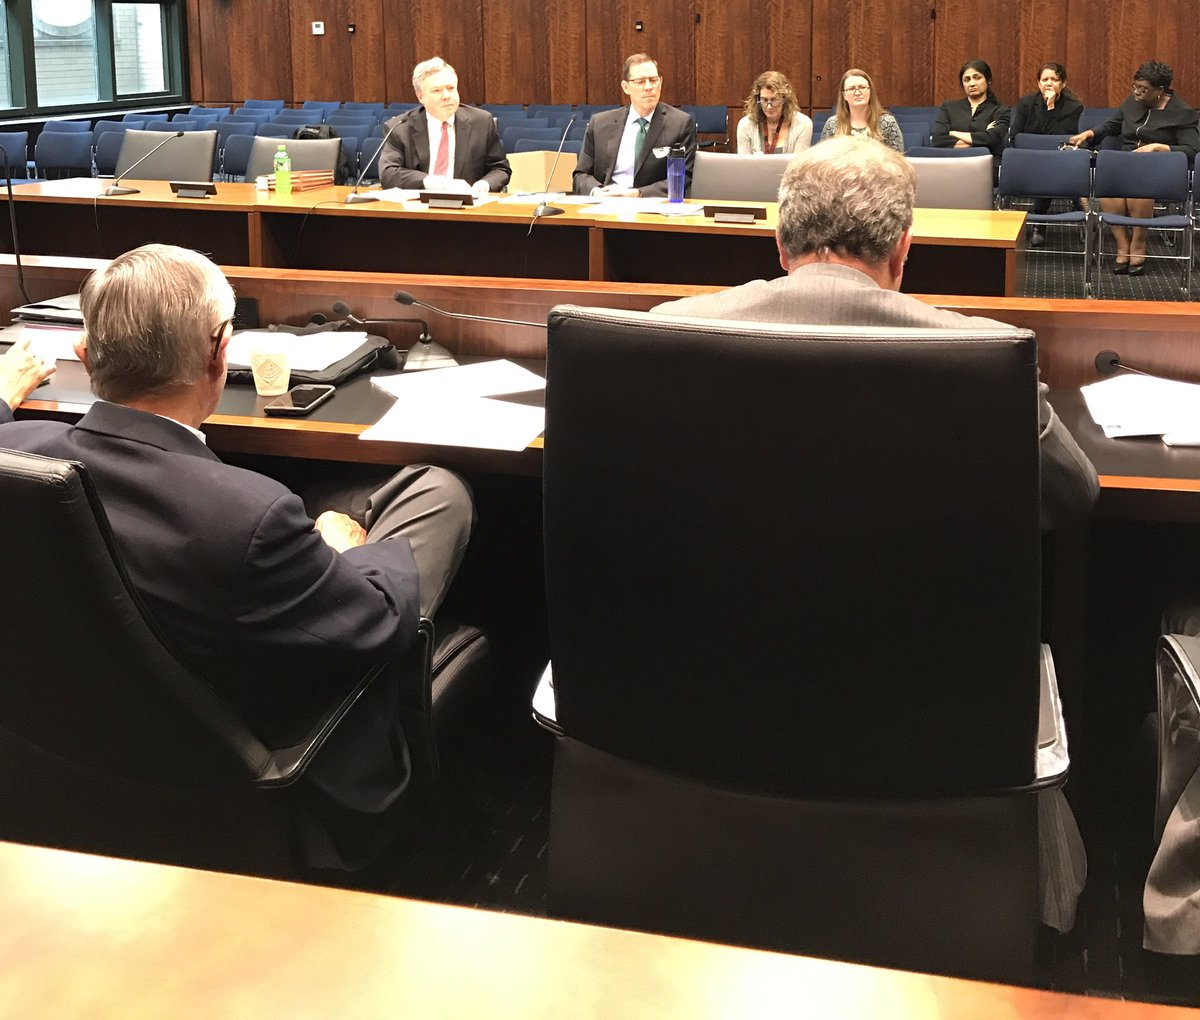 test Twitter Media - ISAC officials testify that College Illinois prepaid tuition program is in trouble, largely due to volatility from budget impasse. Smh! https://t.co/vXSX9zbpqD